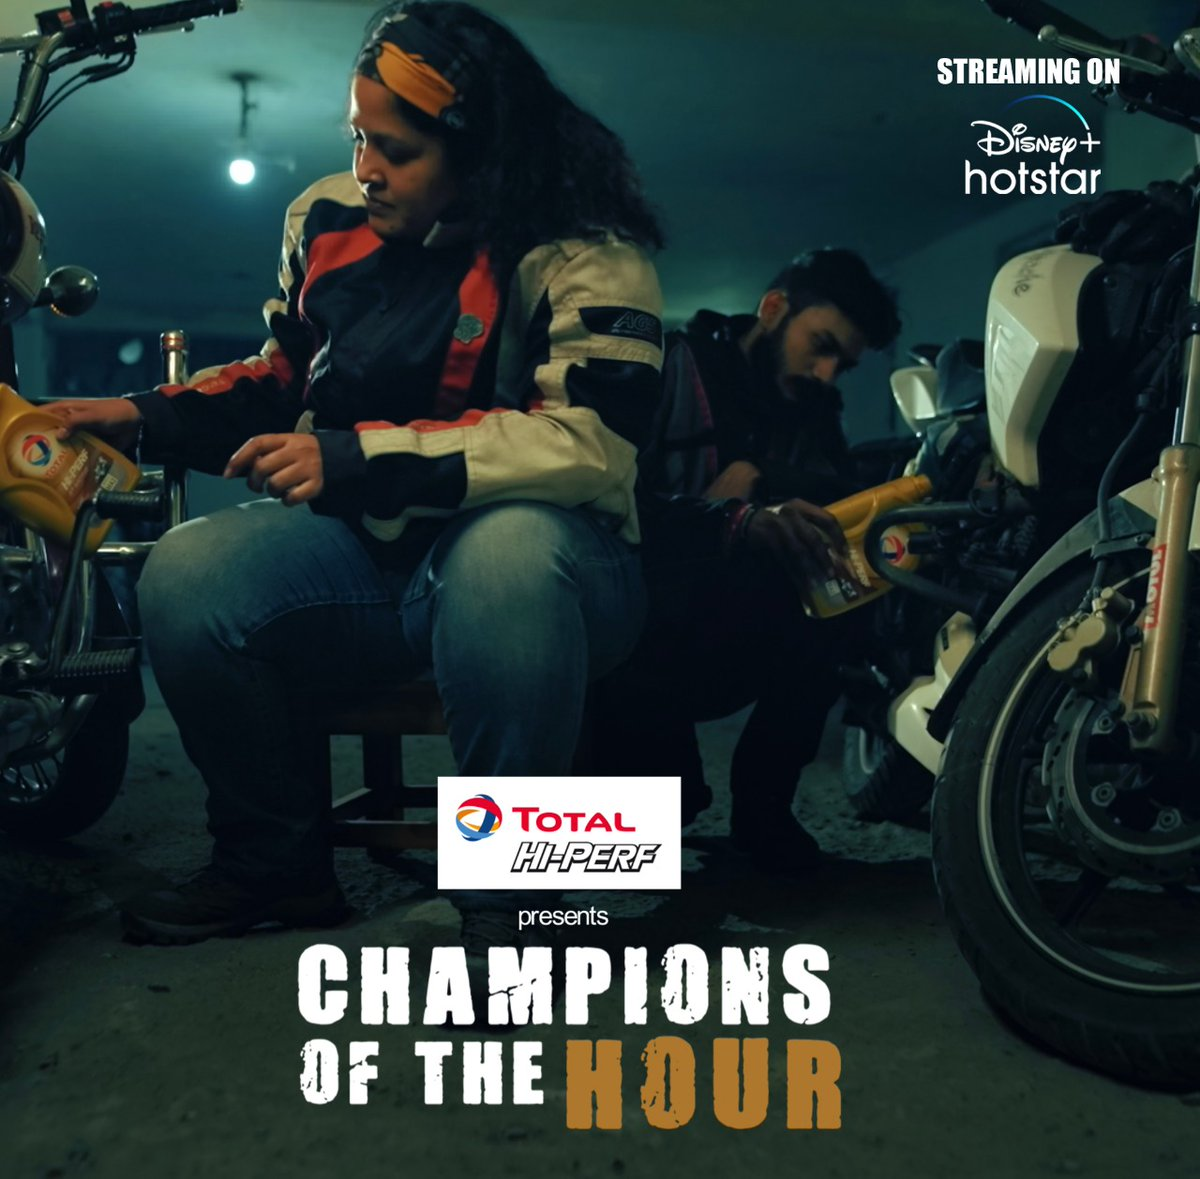 'Bikers for Good', a group of bike lovers are truly riding a wave of change in Delhi. Check out their inspiring story with me, only on #TotalHiPERF presents #ChampionsOfTheHour, streaming on @DisneyPlusHS.  Click here to watch -